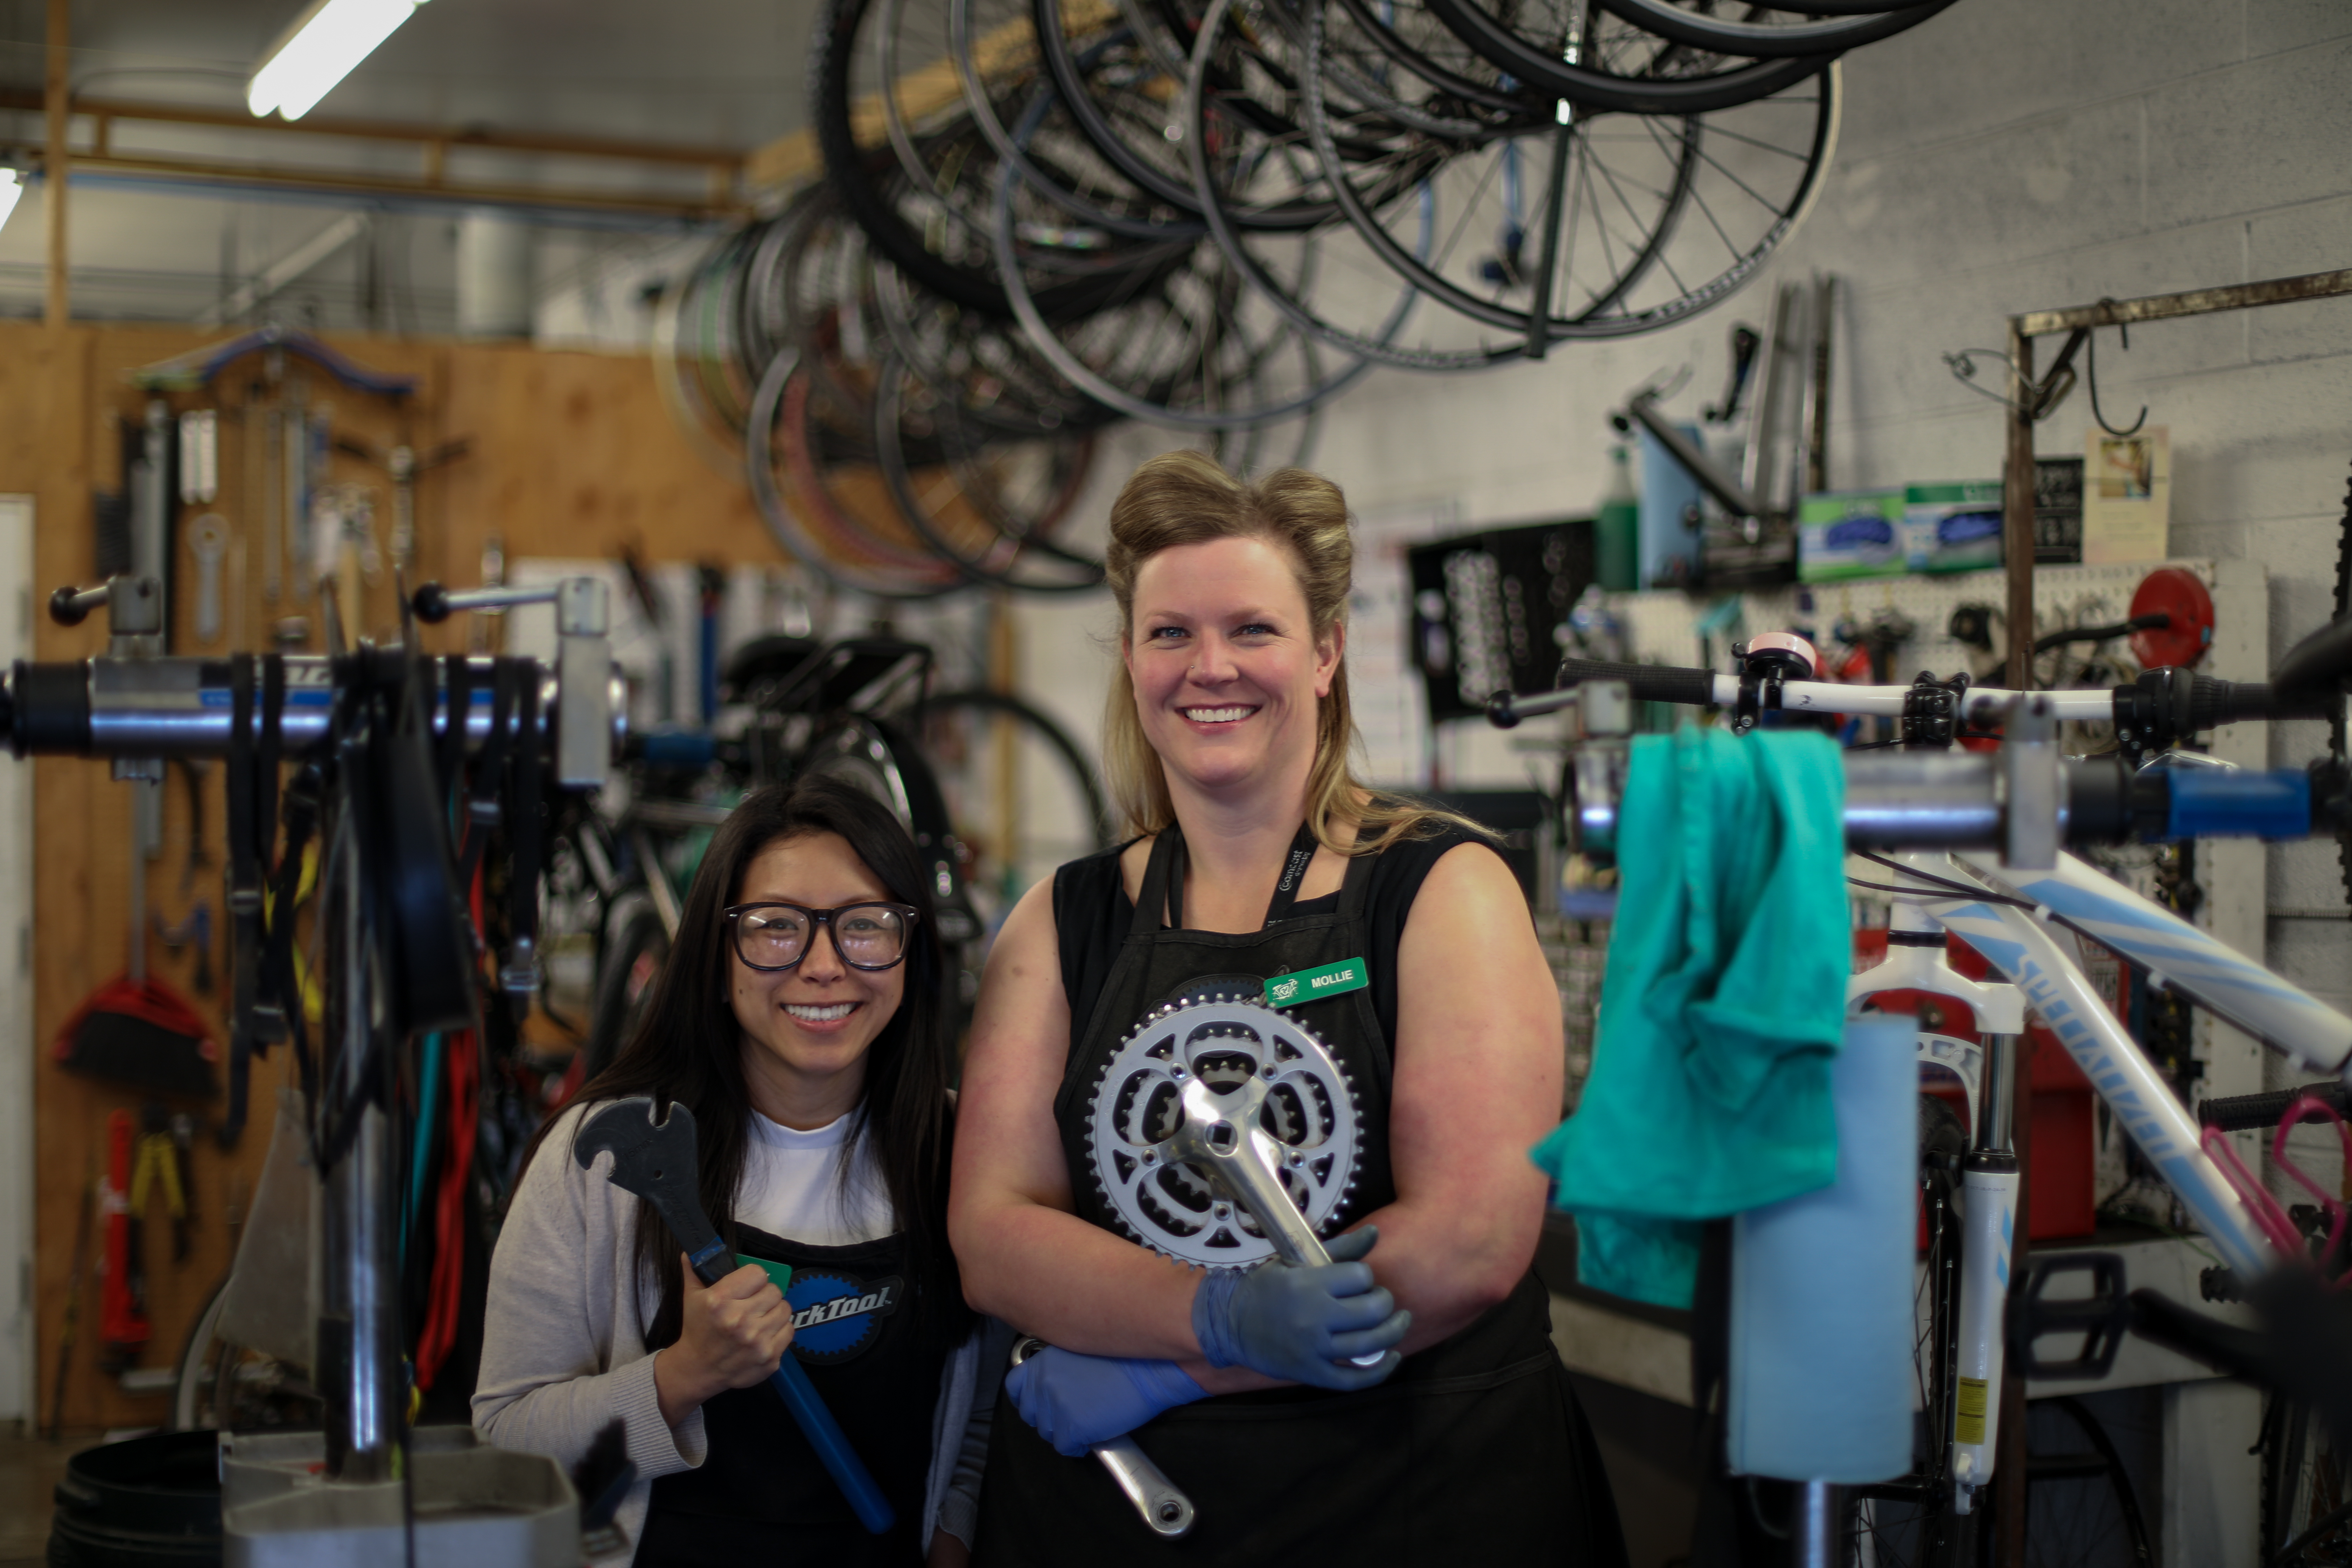 (L–R) SLCBC Volunteer and Program Coordinator Amy Wiscombe and Head Mechanic Mollie Bourdos. Photos: John Barkiple